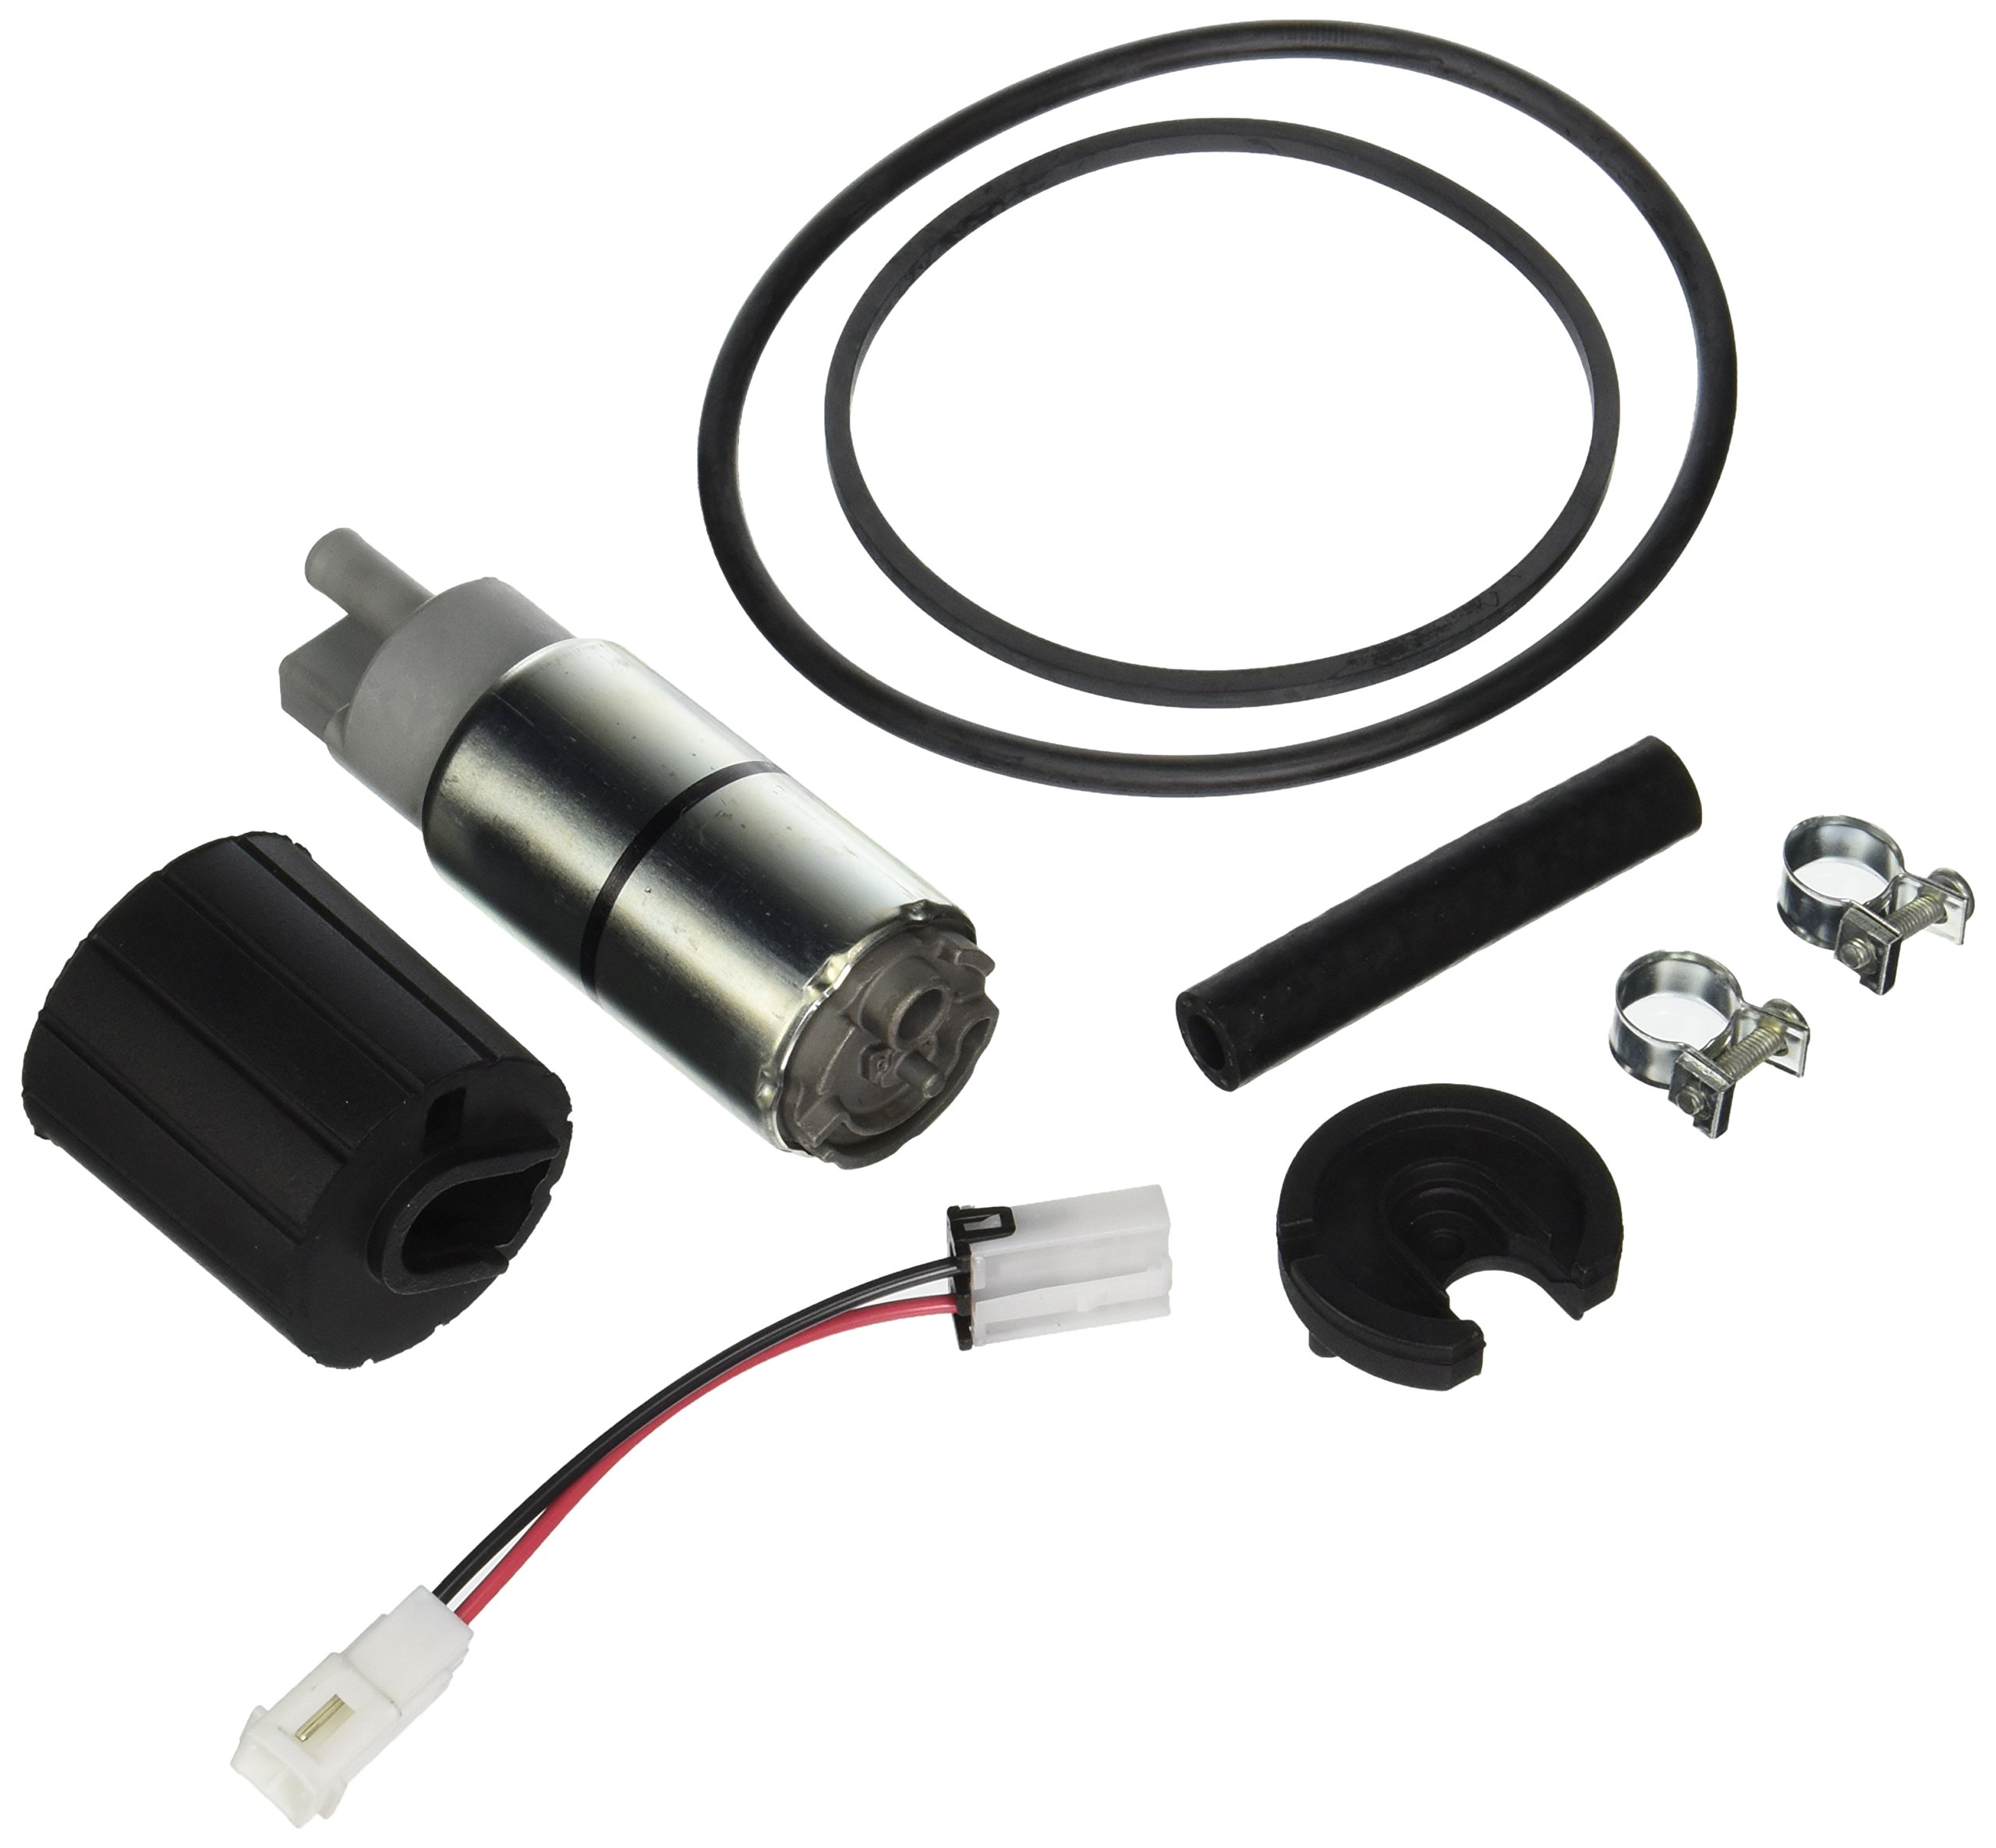 Best Rated In Automotive Replacement Fuel Pumps Accessories 1999 Mustang Filter Rep Bosch 69131 Original Equipment Electric Pump Product Image